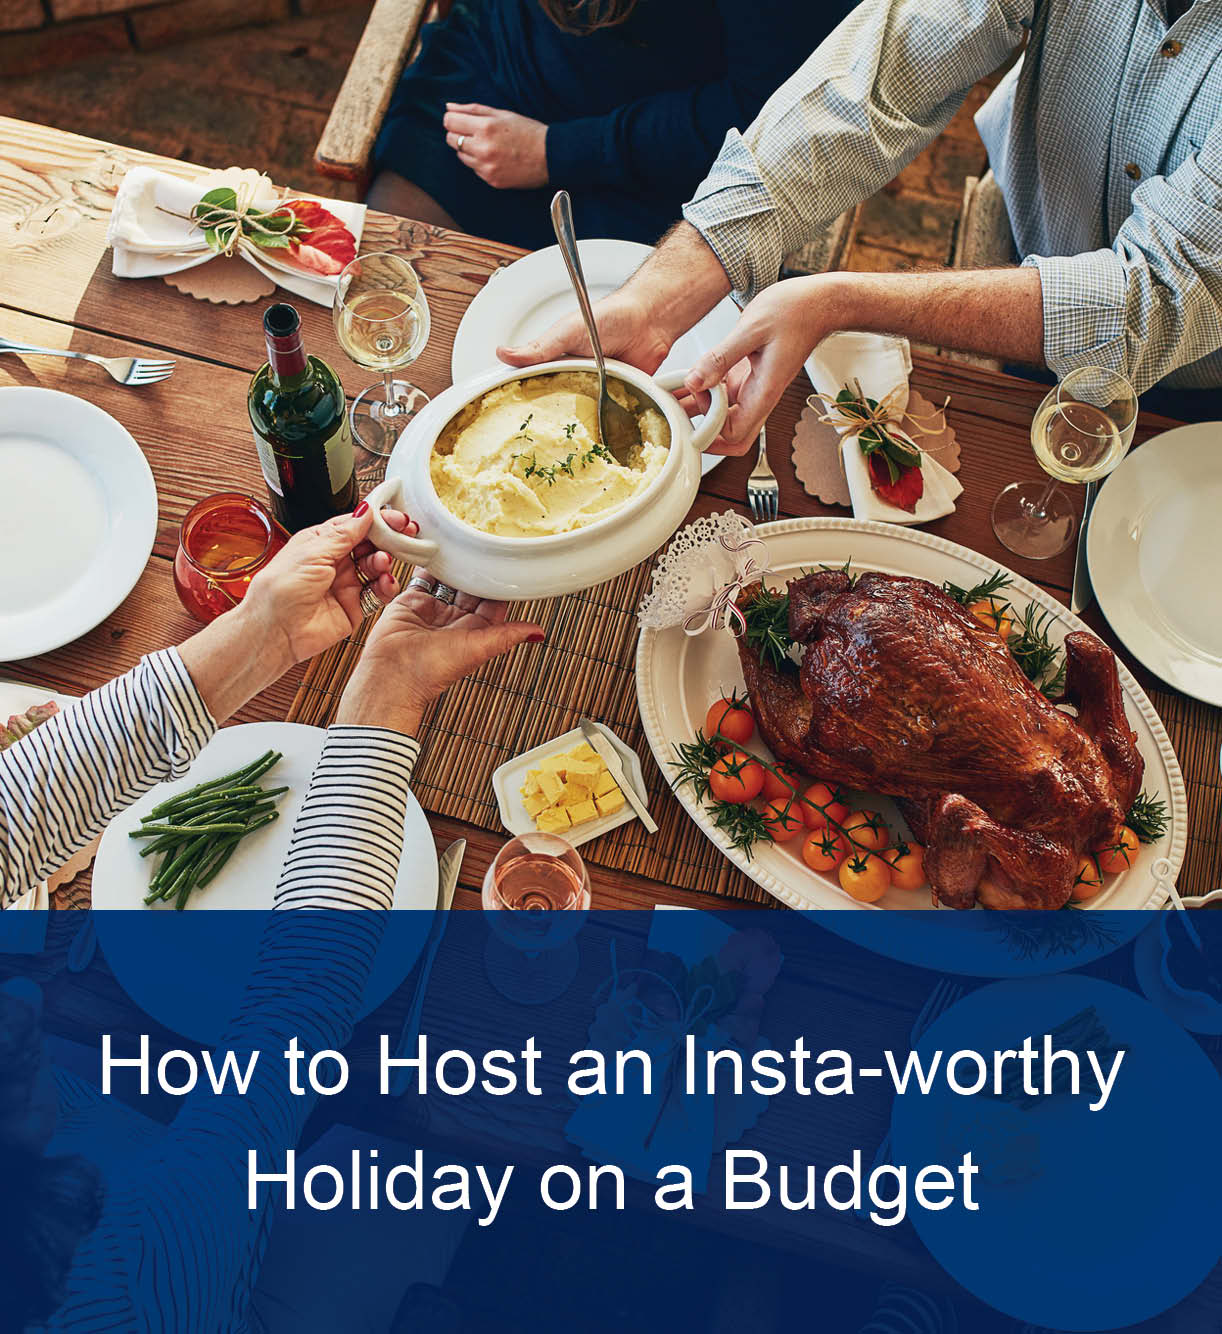 How to Host an Instagramable Holiday on a Budget thumbnail image